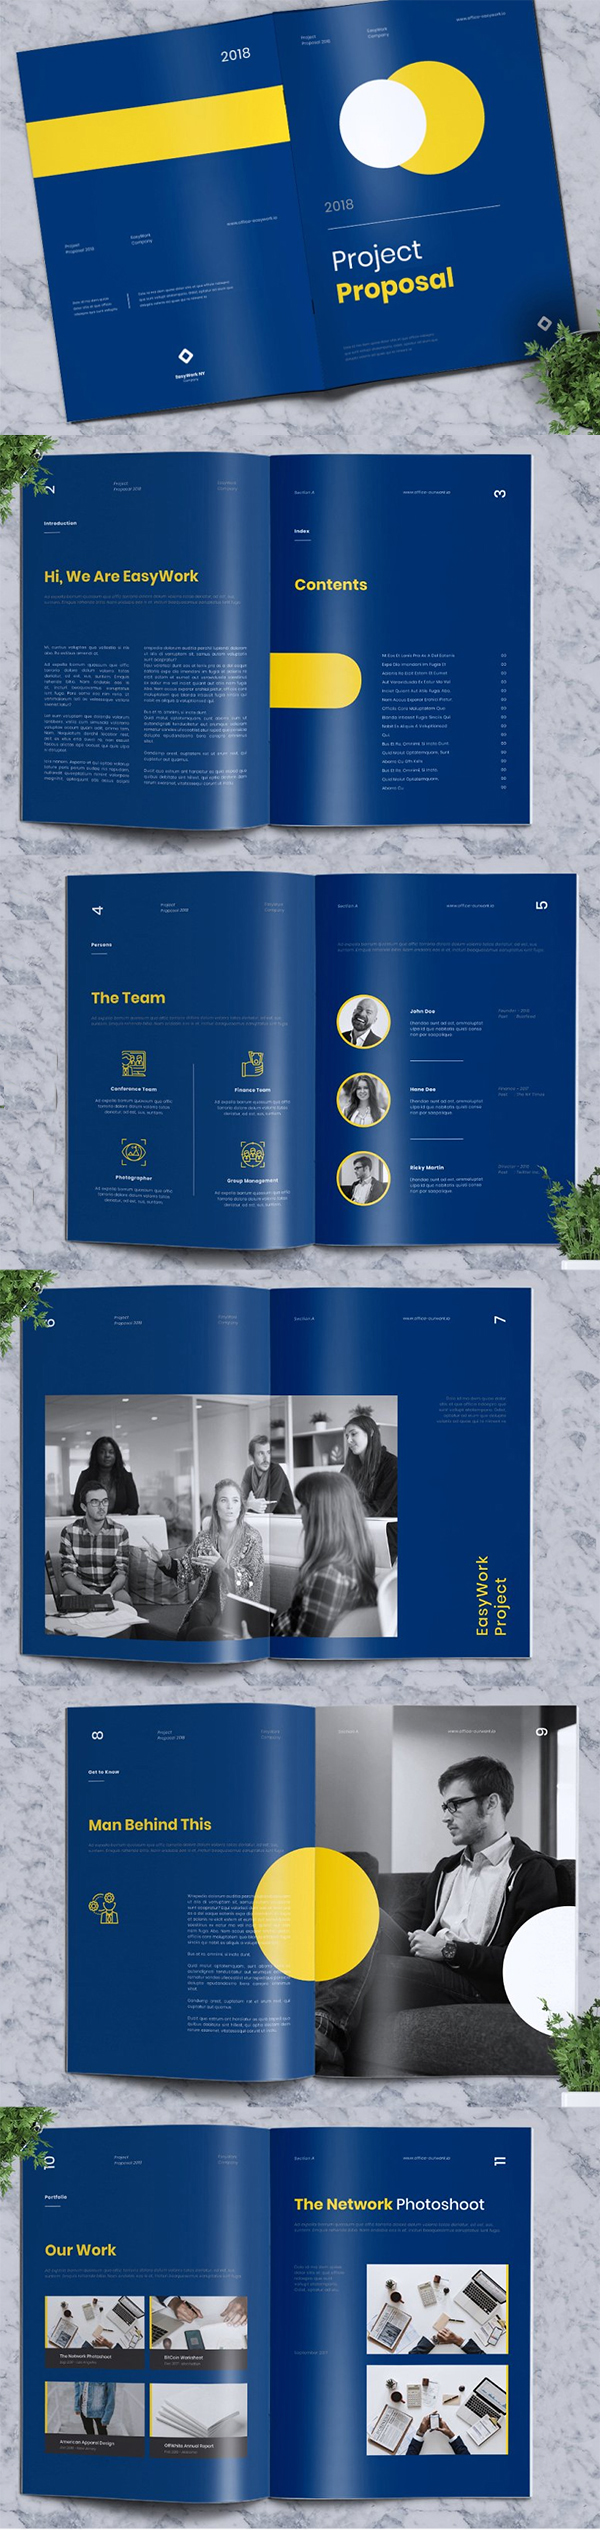 Easywork – Project Proposal